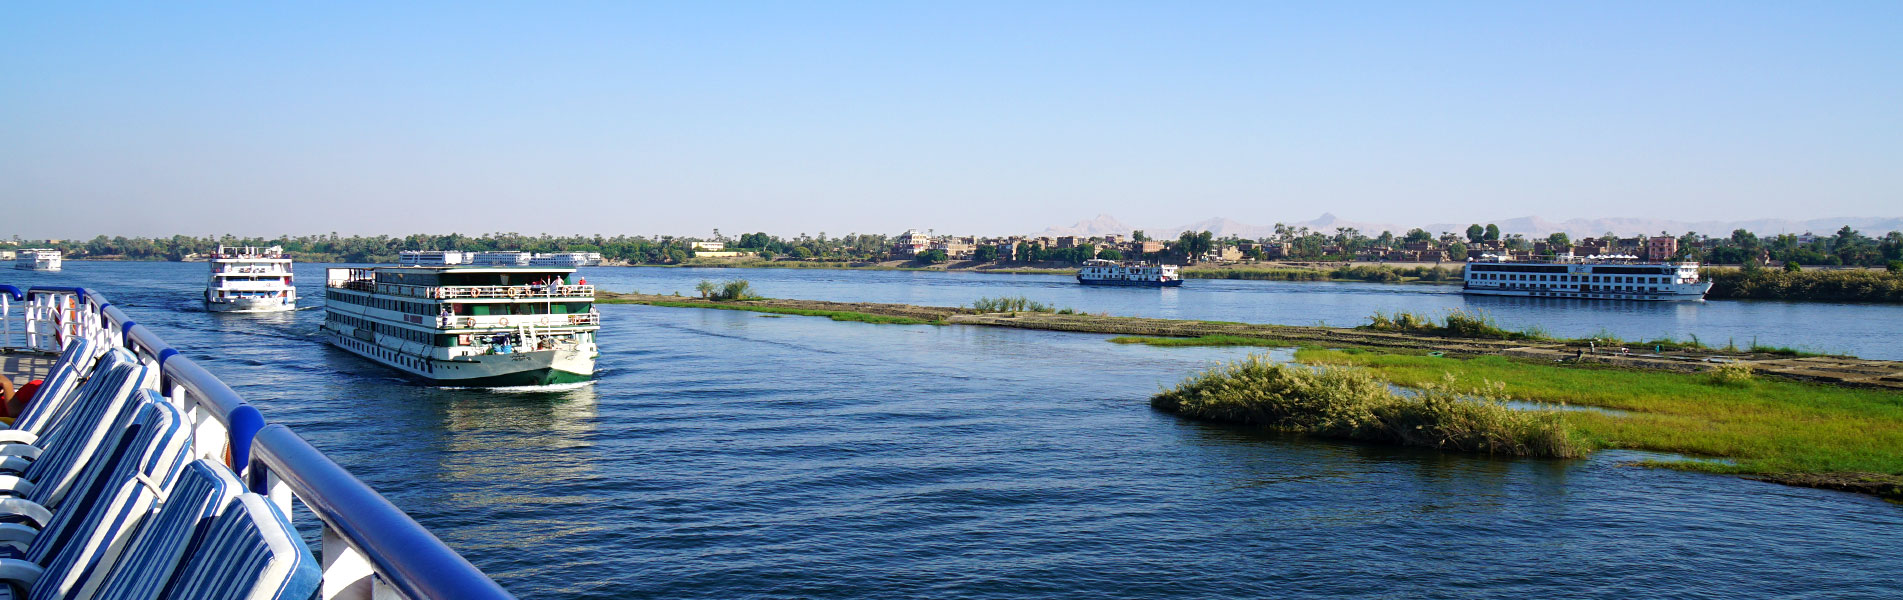 Egypt Nile Cruise